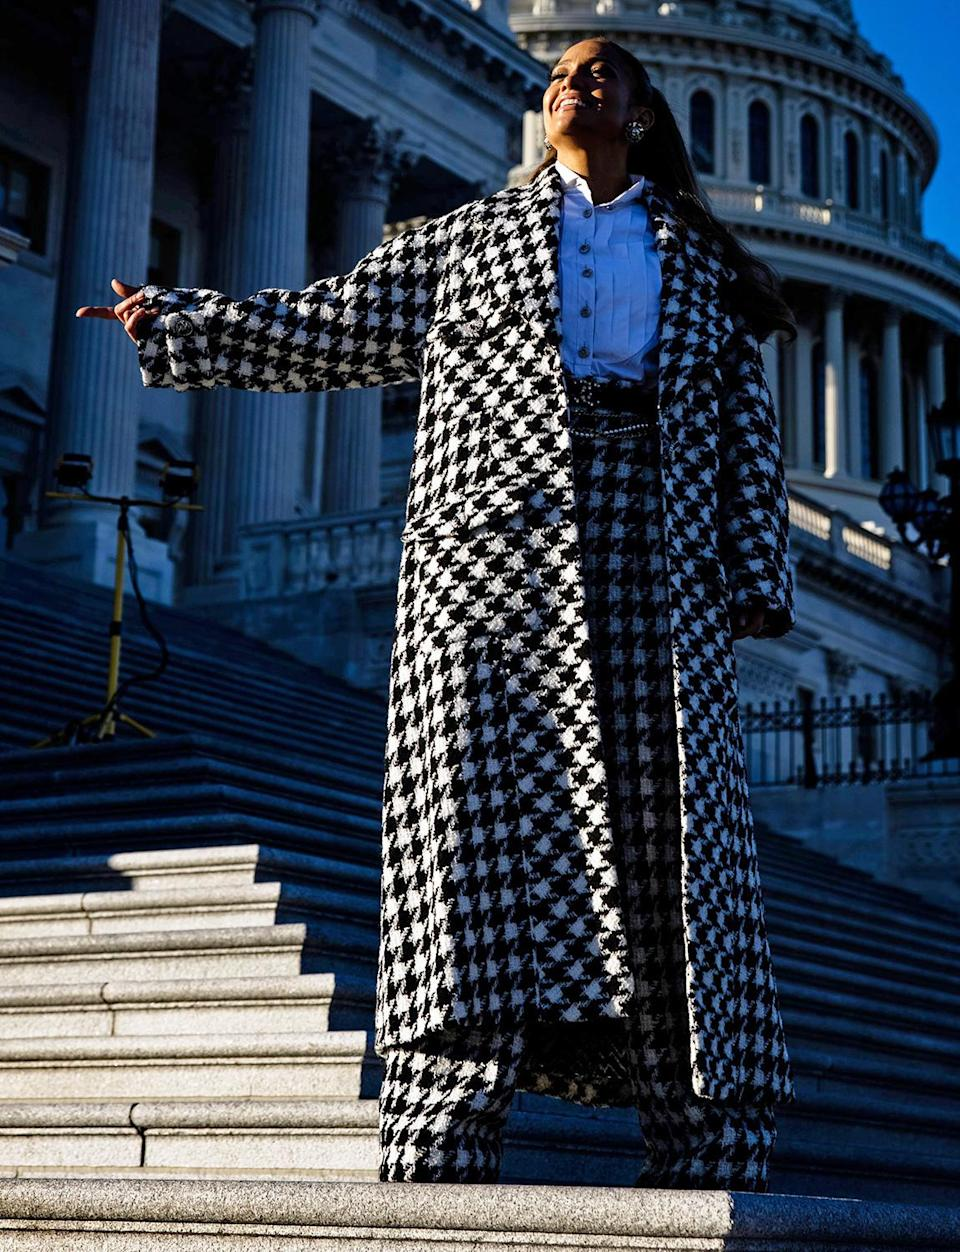 <p>Ahead of her inauguration performance, Jennifer Lopez visits the United States Capitol building in Washington, D.C., on Tuesday.</p>